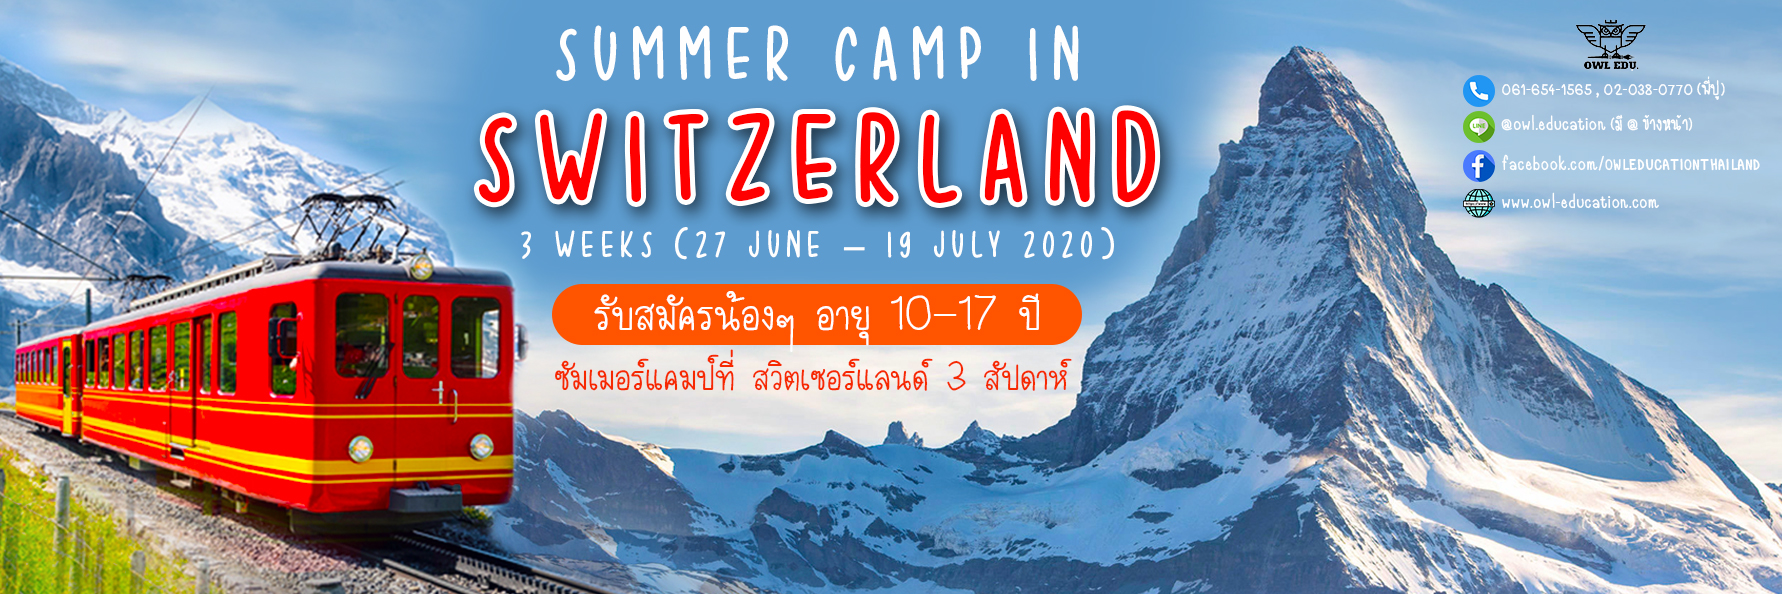 Summer-camp-switzerland